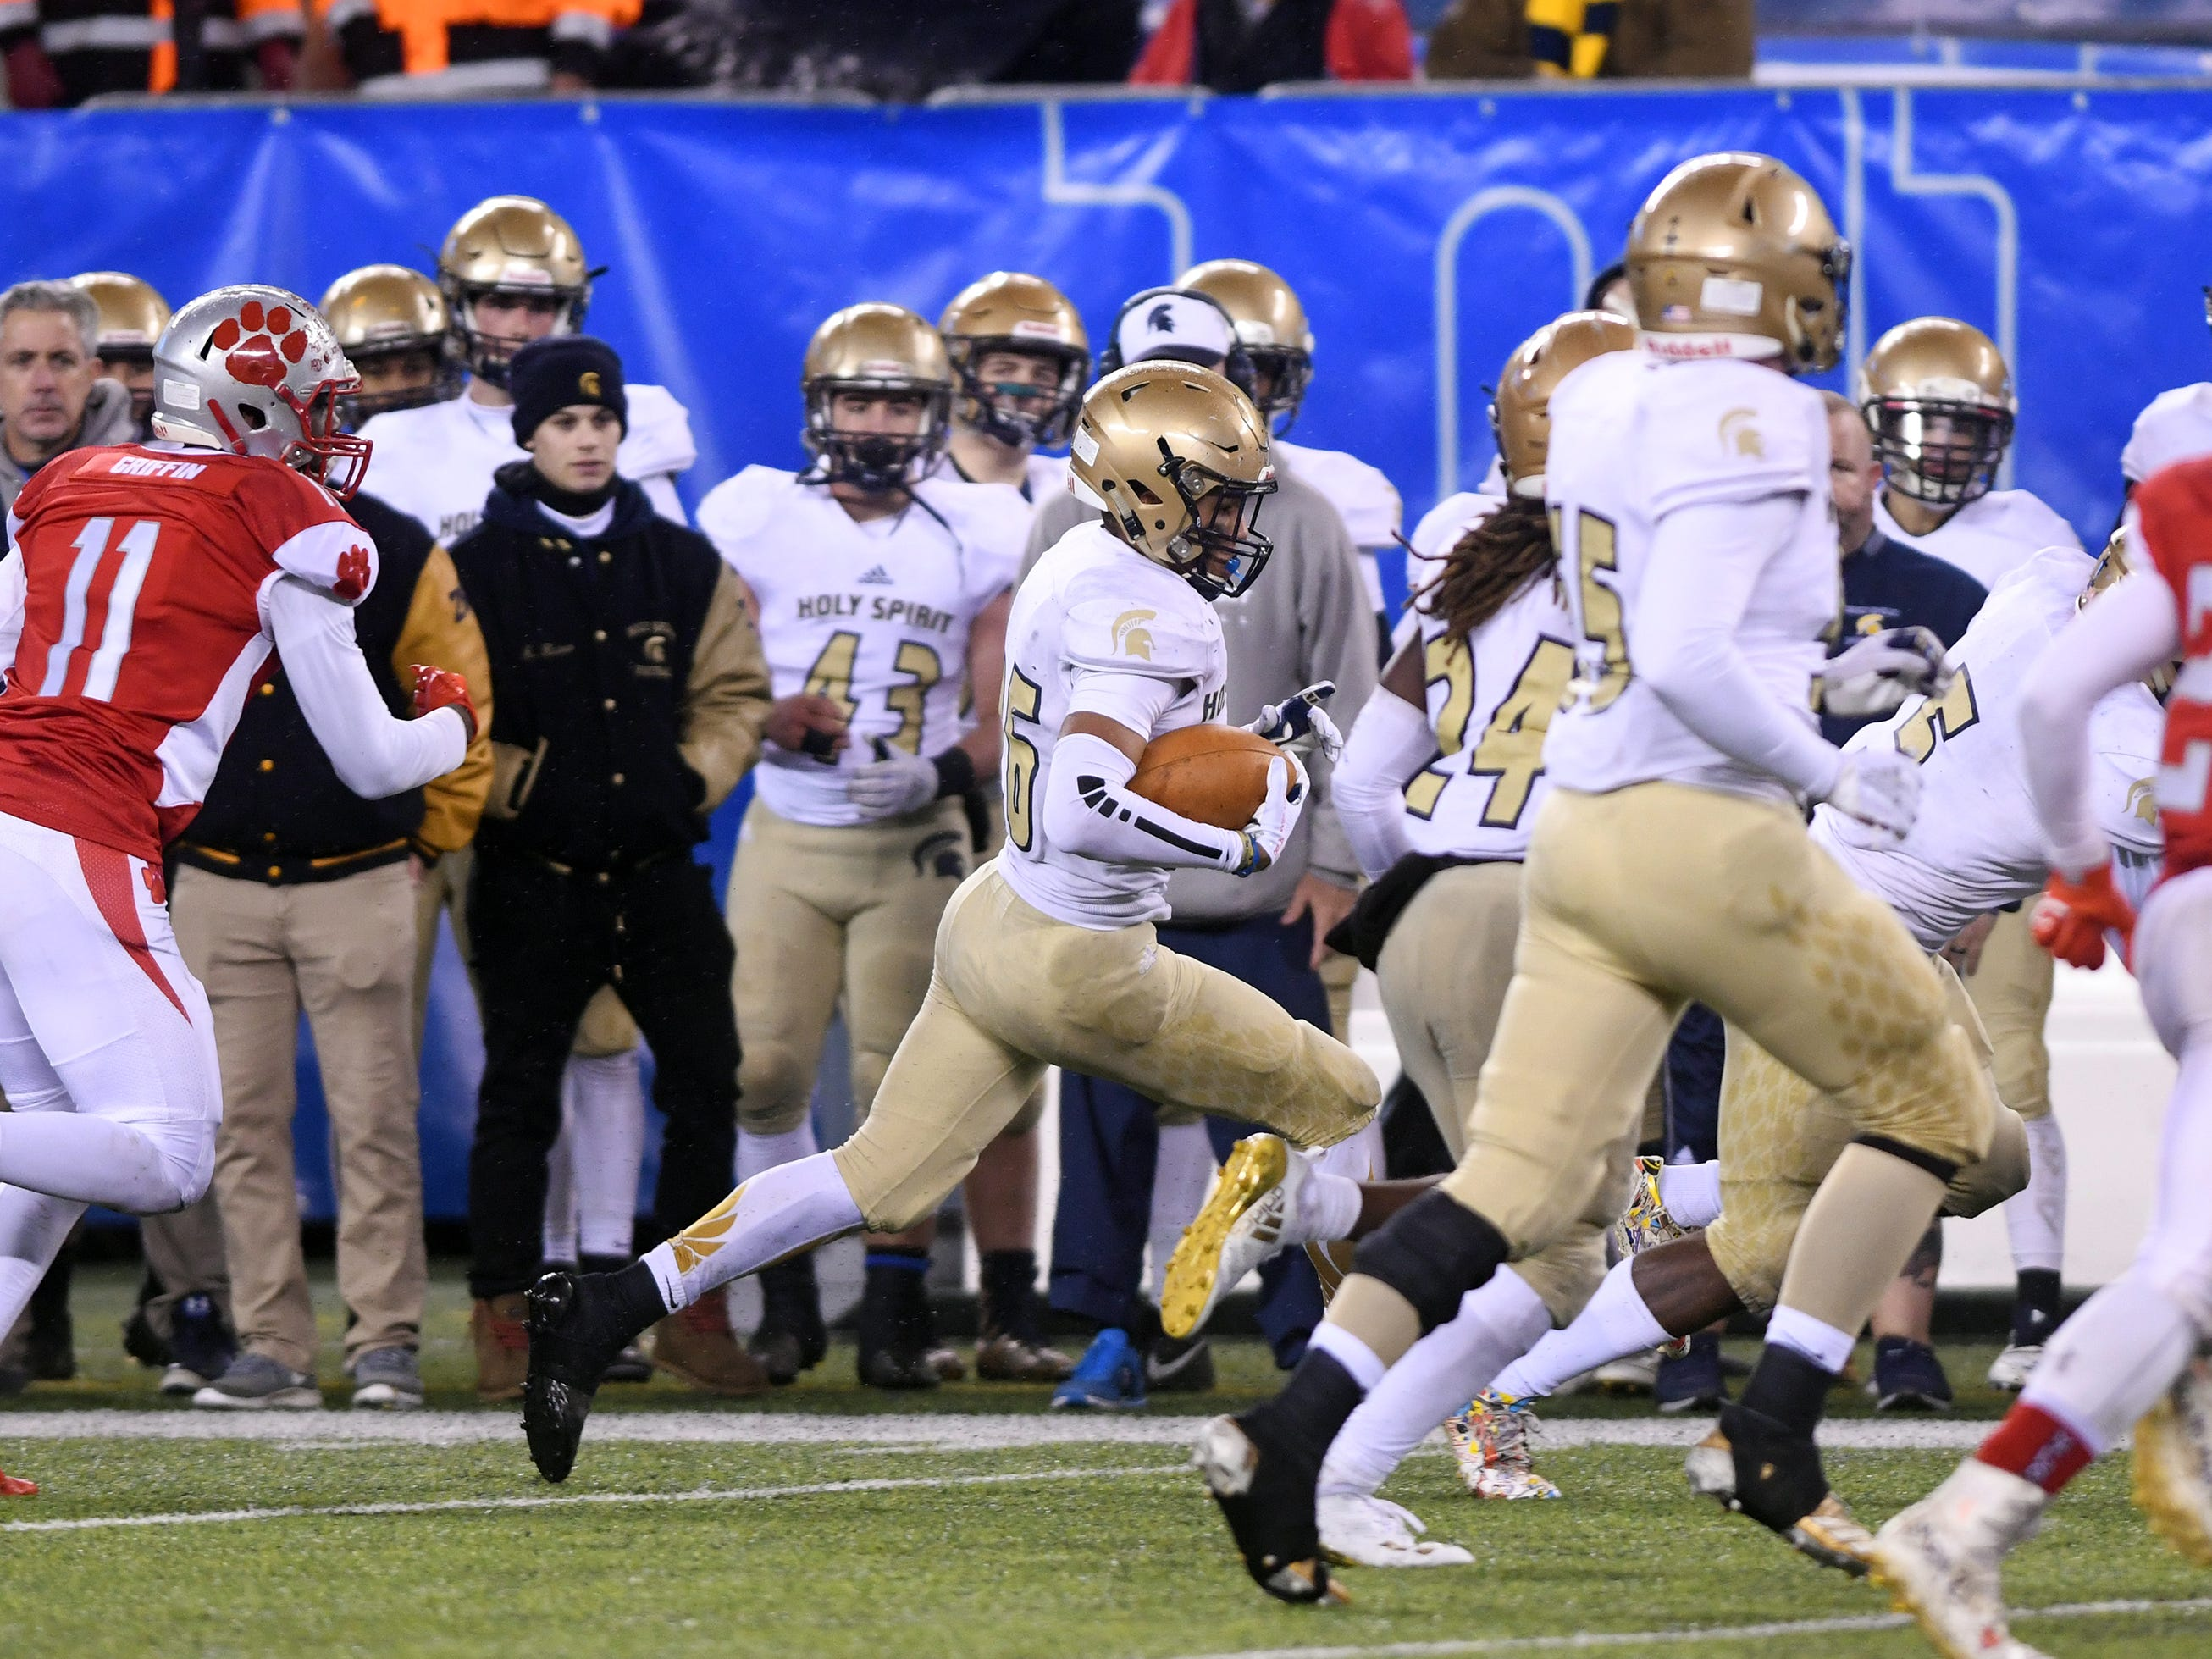 St. Joseph beat Holy Spirit for the Non-Public 2 state championship. The Wildcats topped the Spartans, 41-22 at MetLife Stadium on Friday, November 30, 2018.